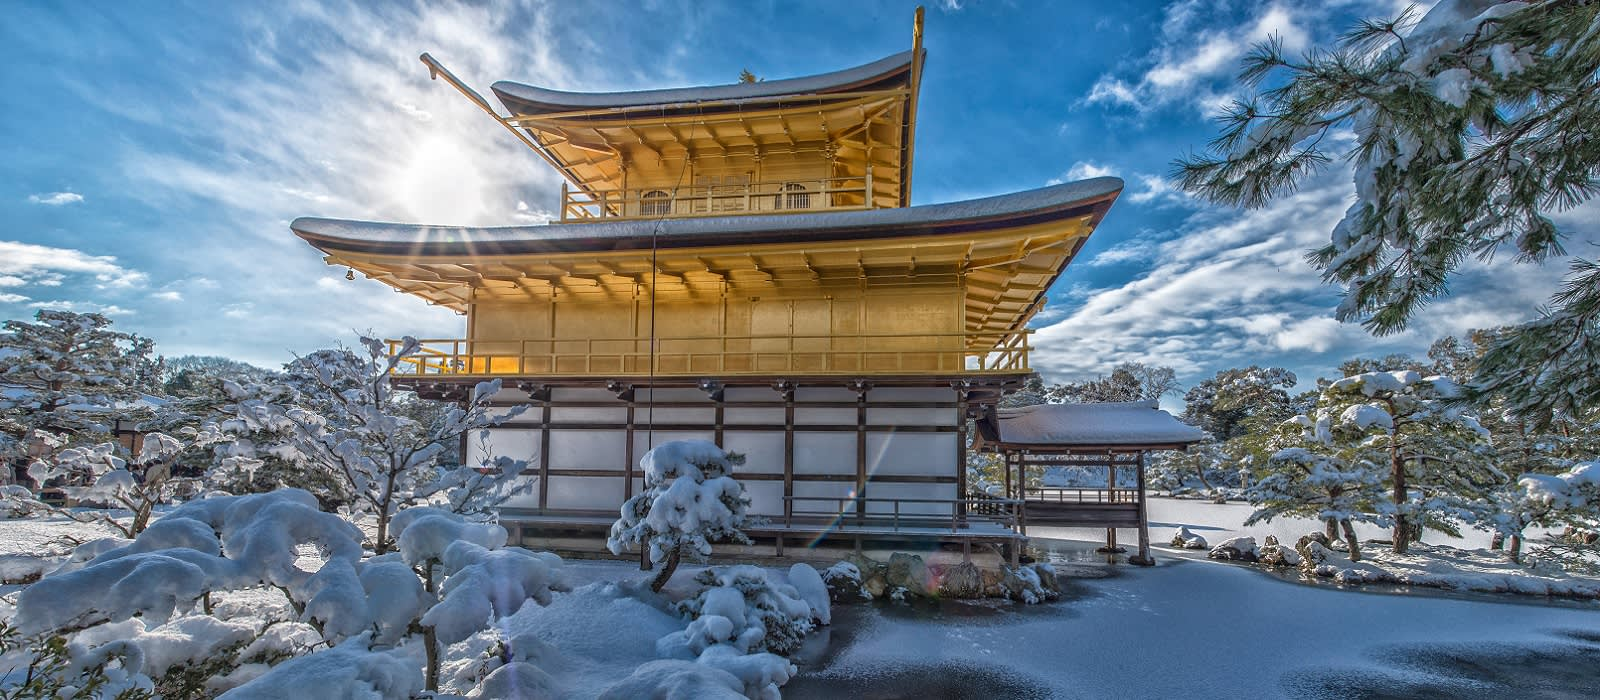 Enchanting Travels Japan Tours Kyoto shrine - Things to do in Japan